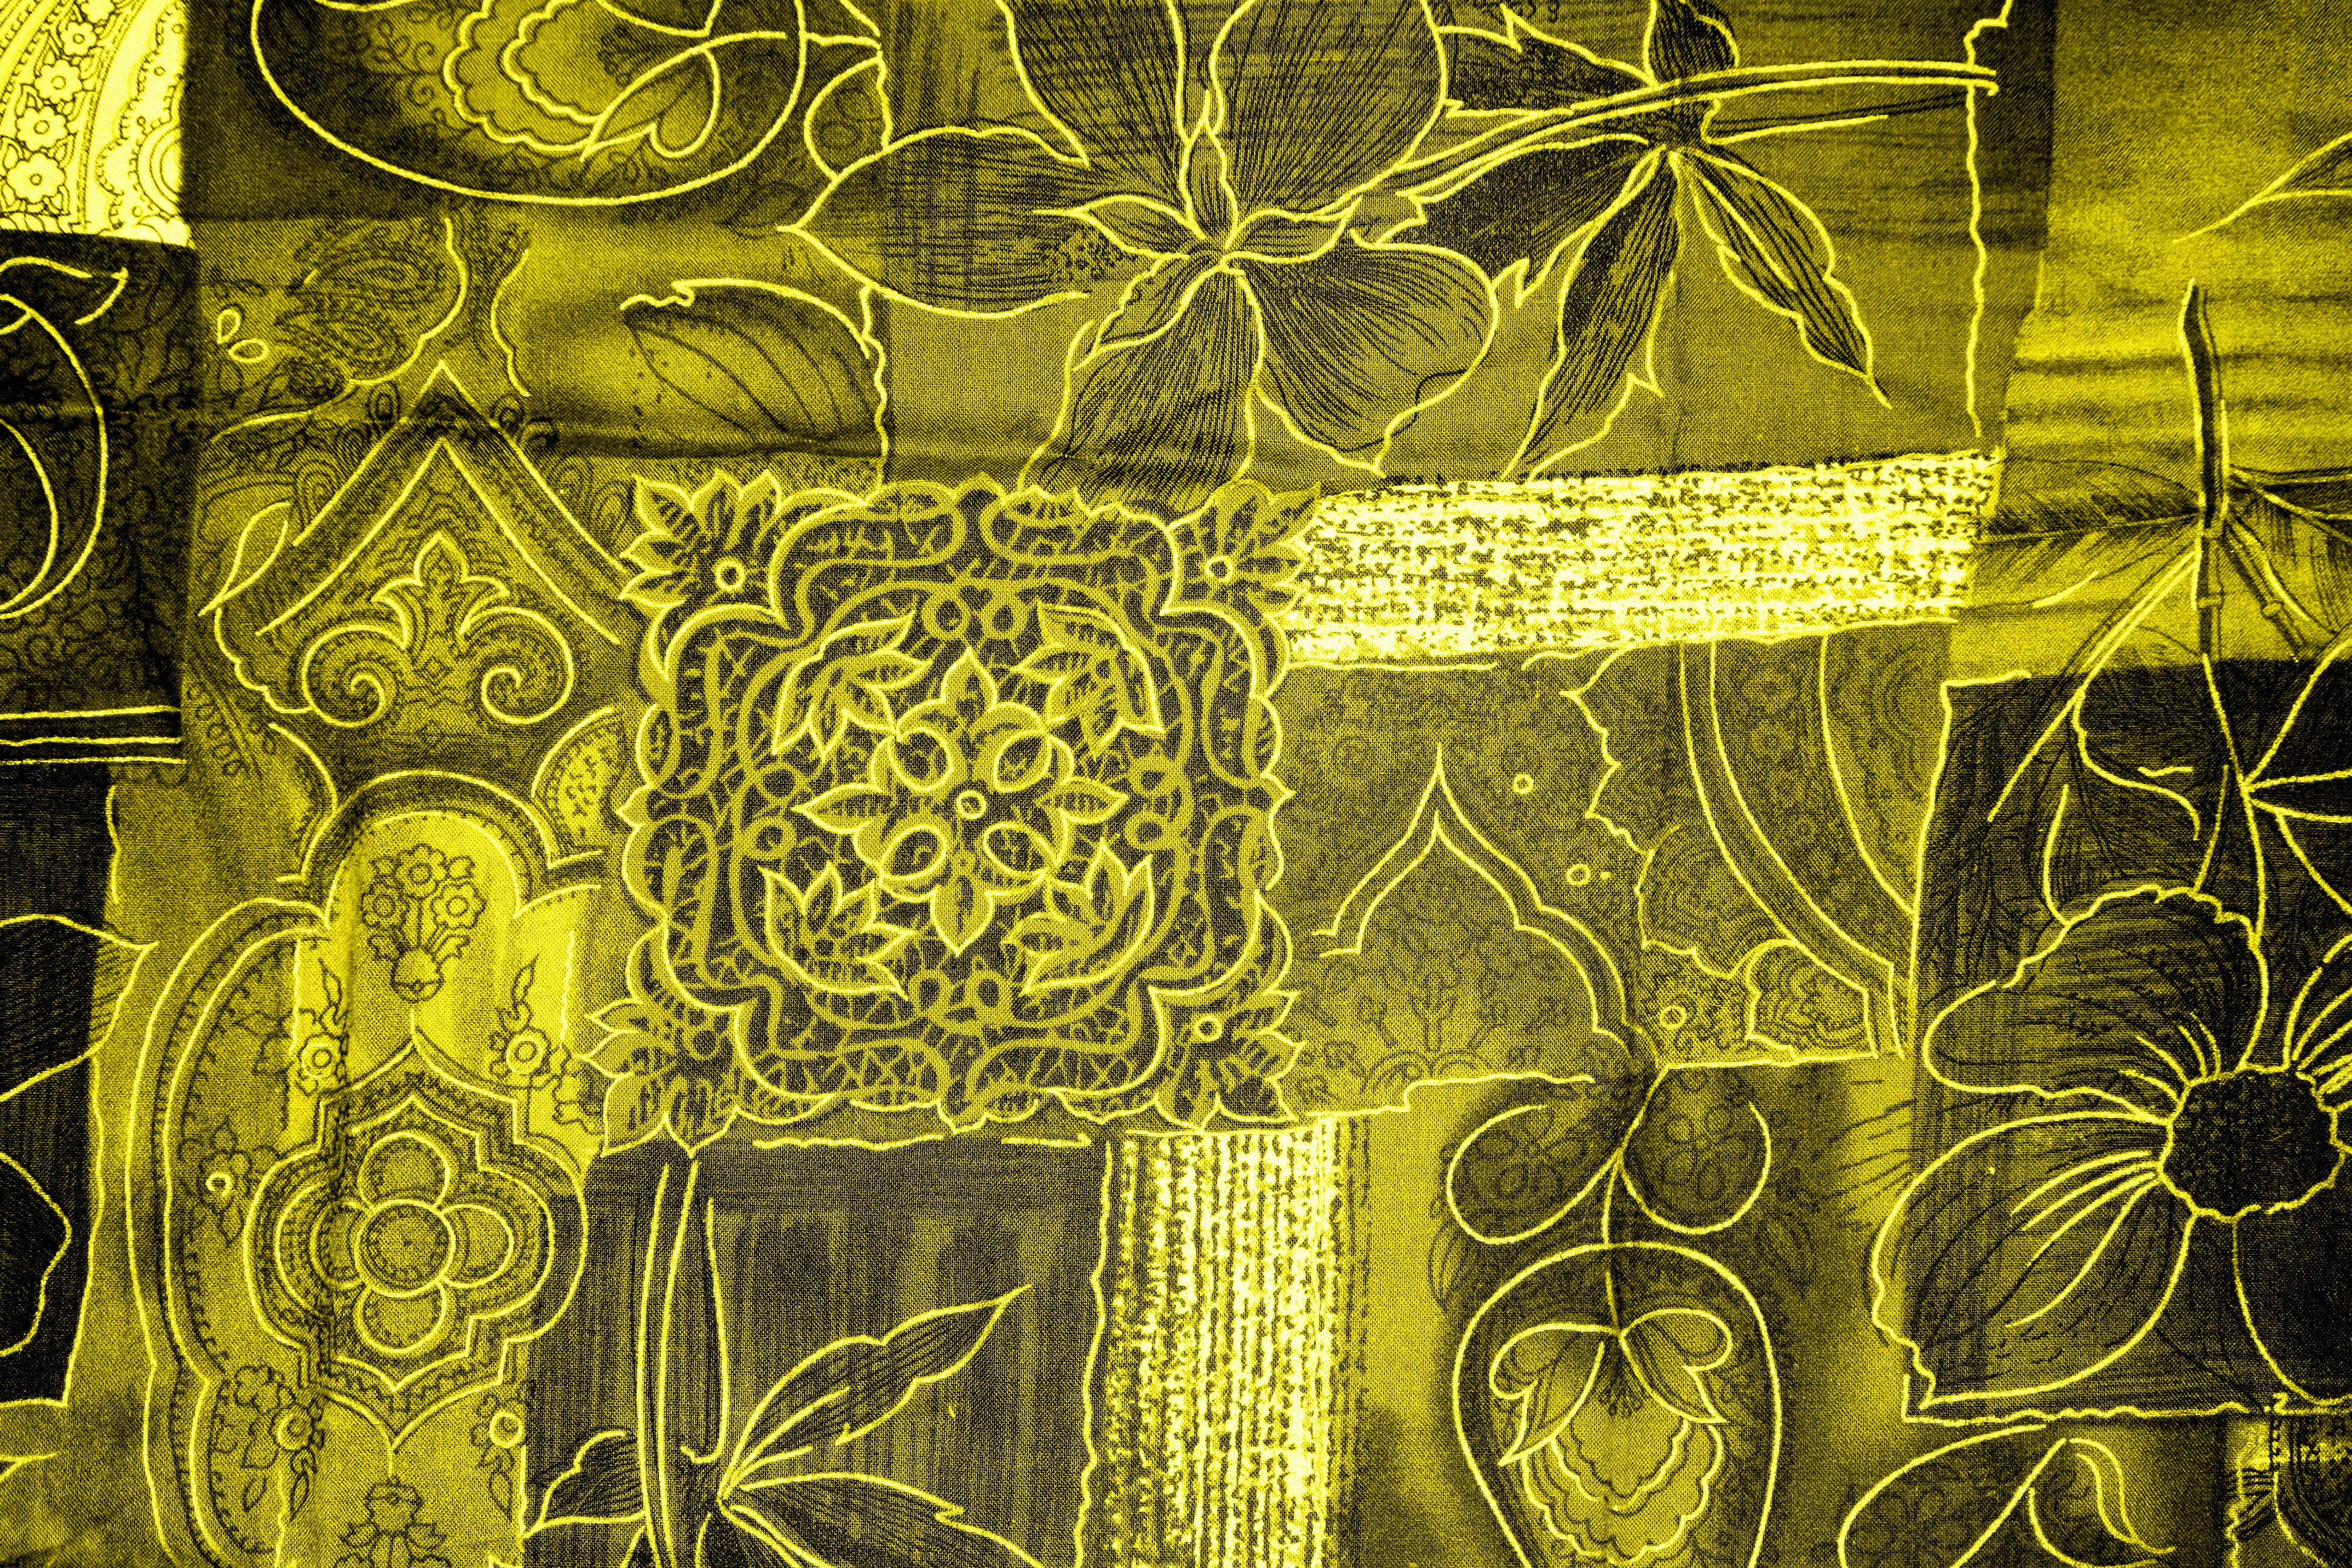 Yellow Patchwork Fabric Texture Picture Free Photograph